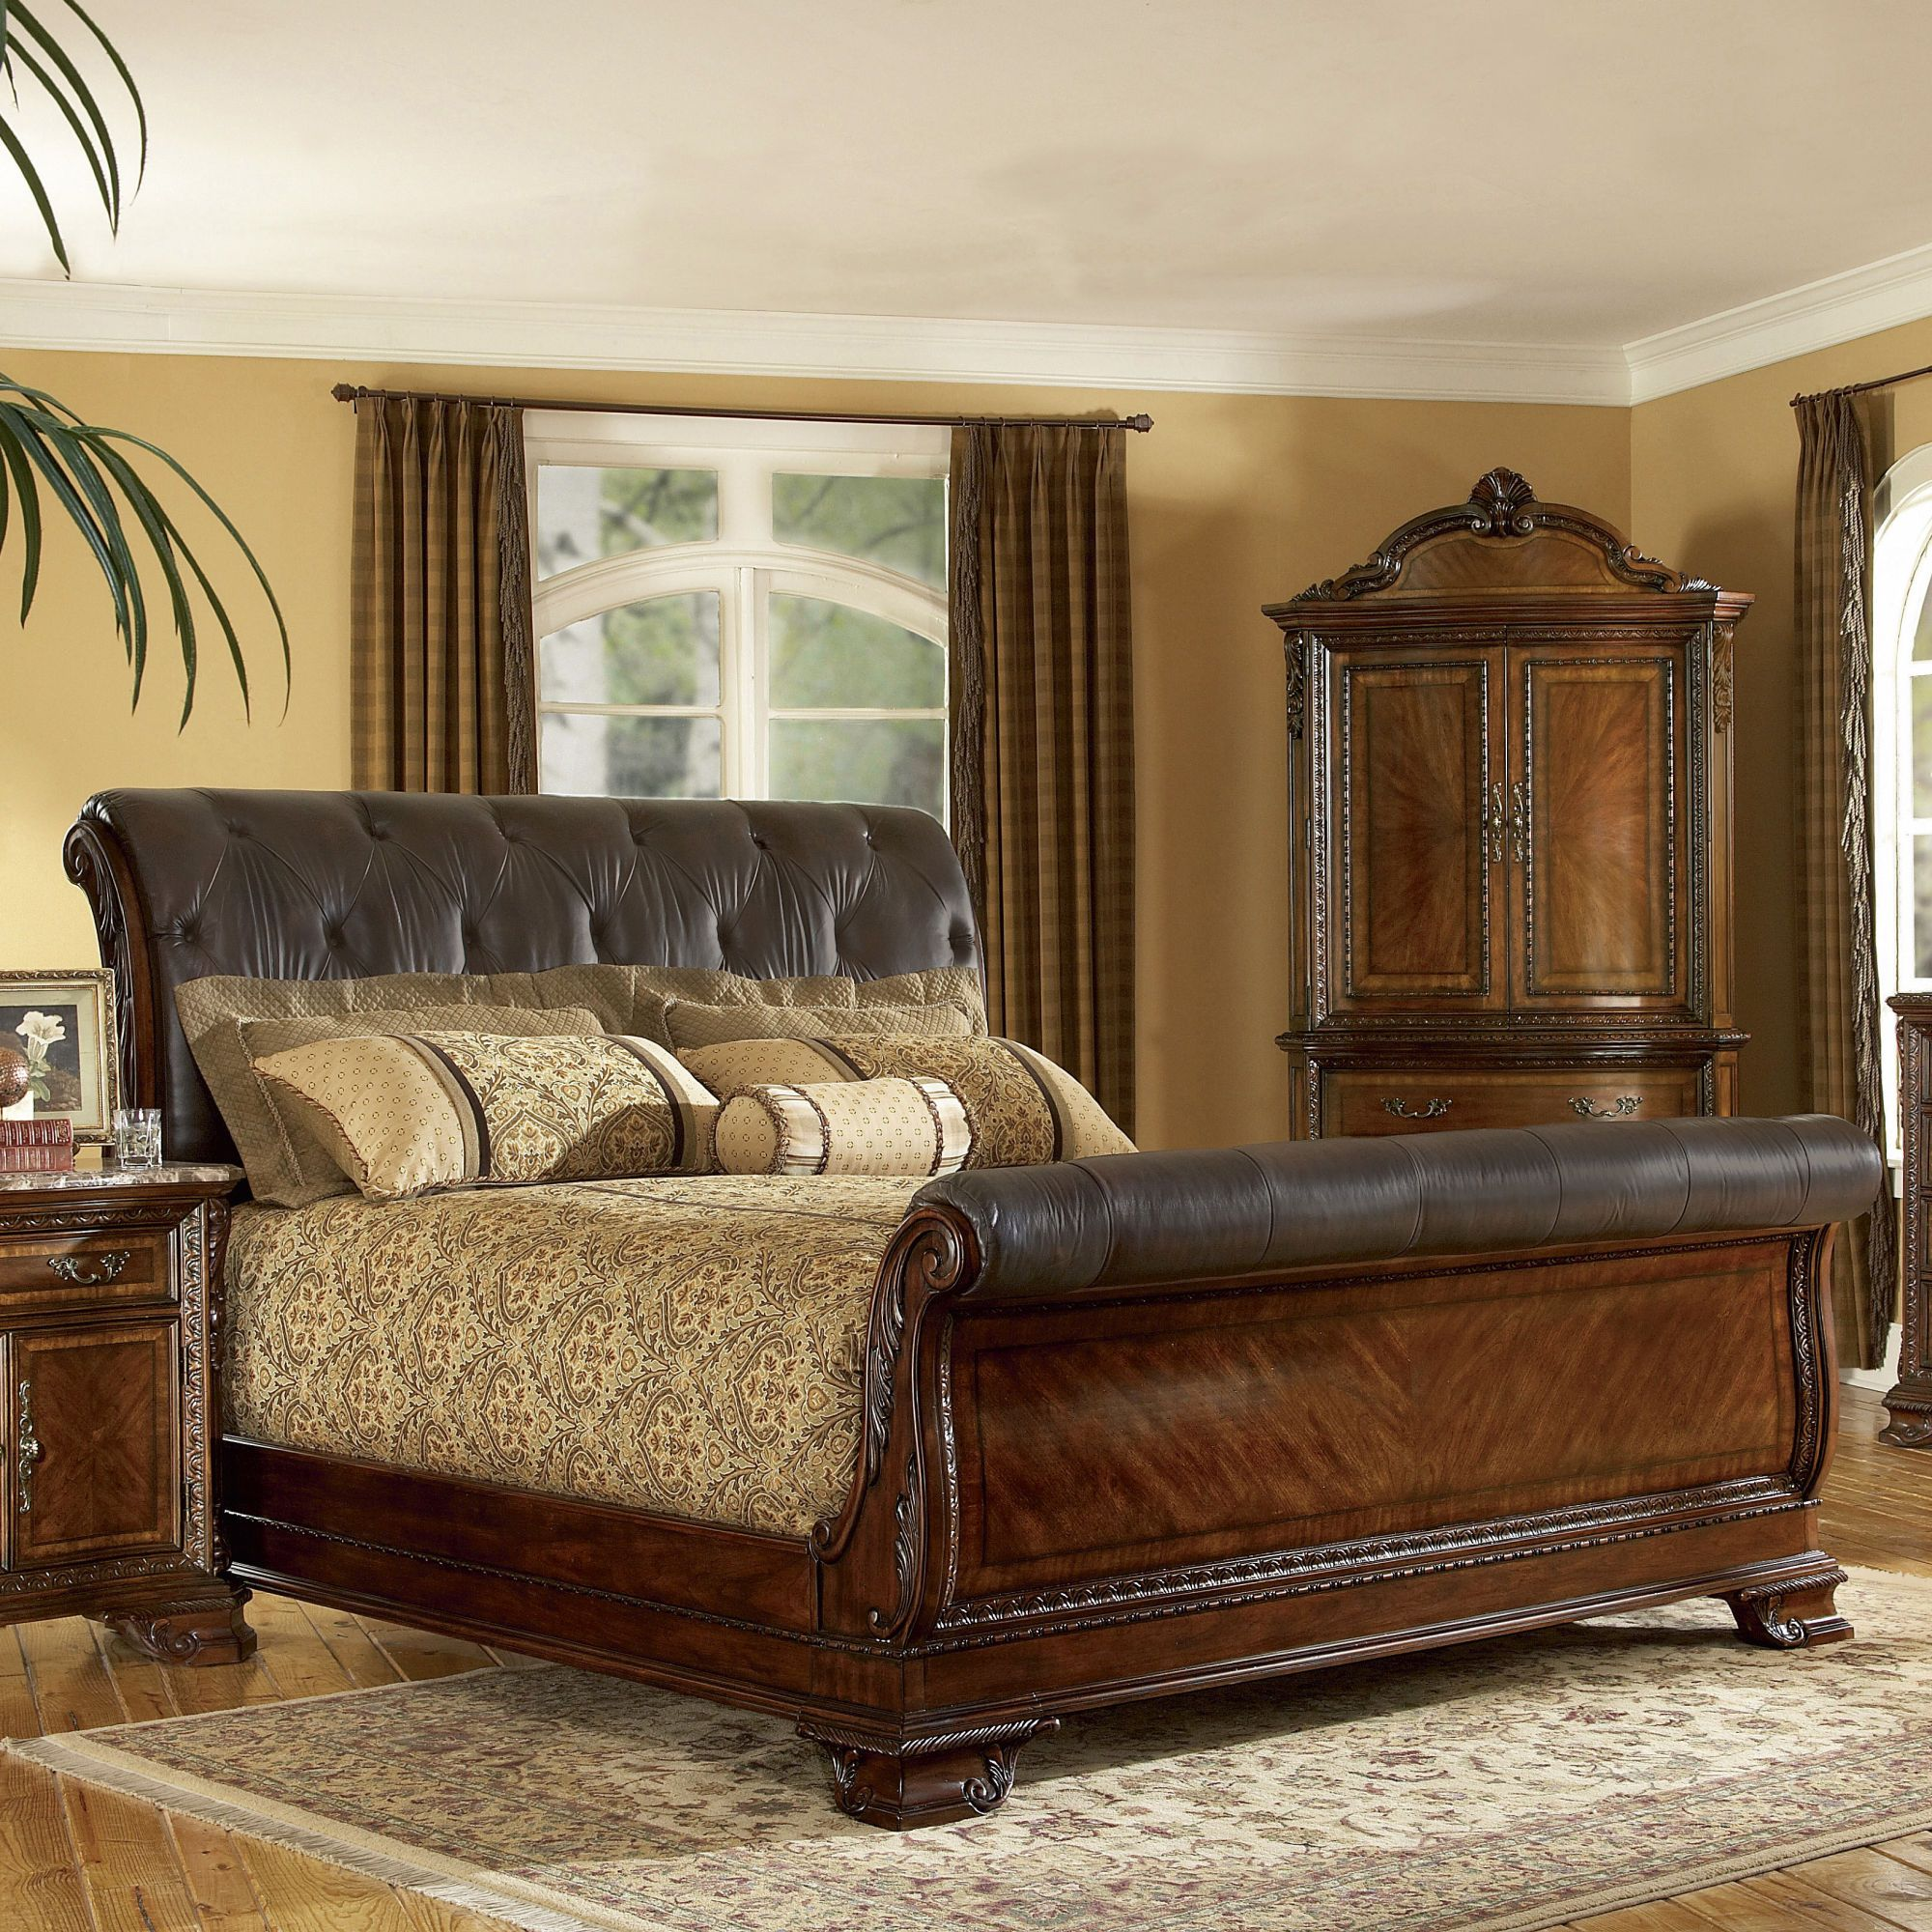 A.R.T. Old World Leather Sleigh Bed Wayfair For the